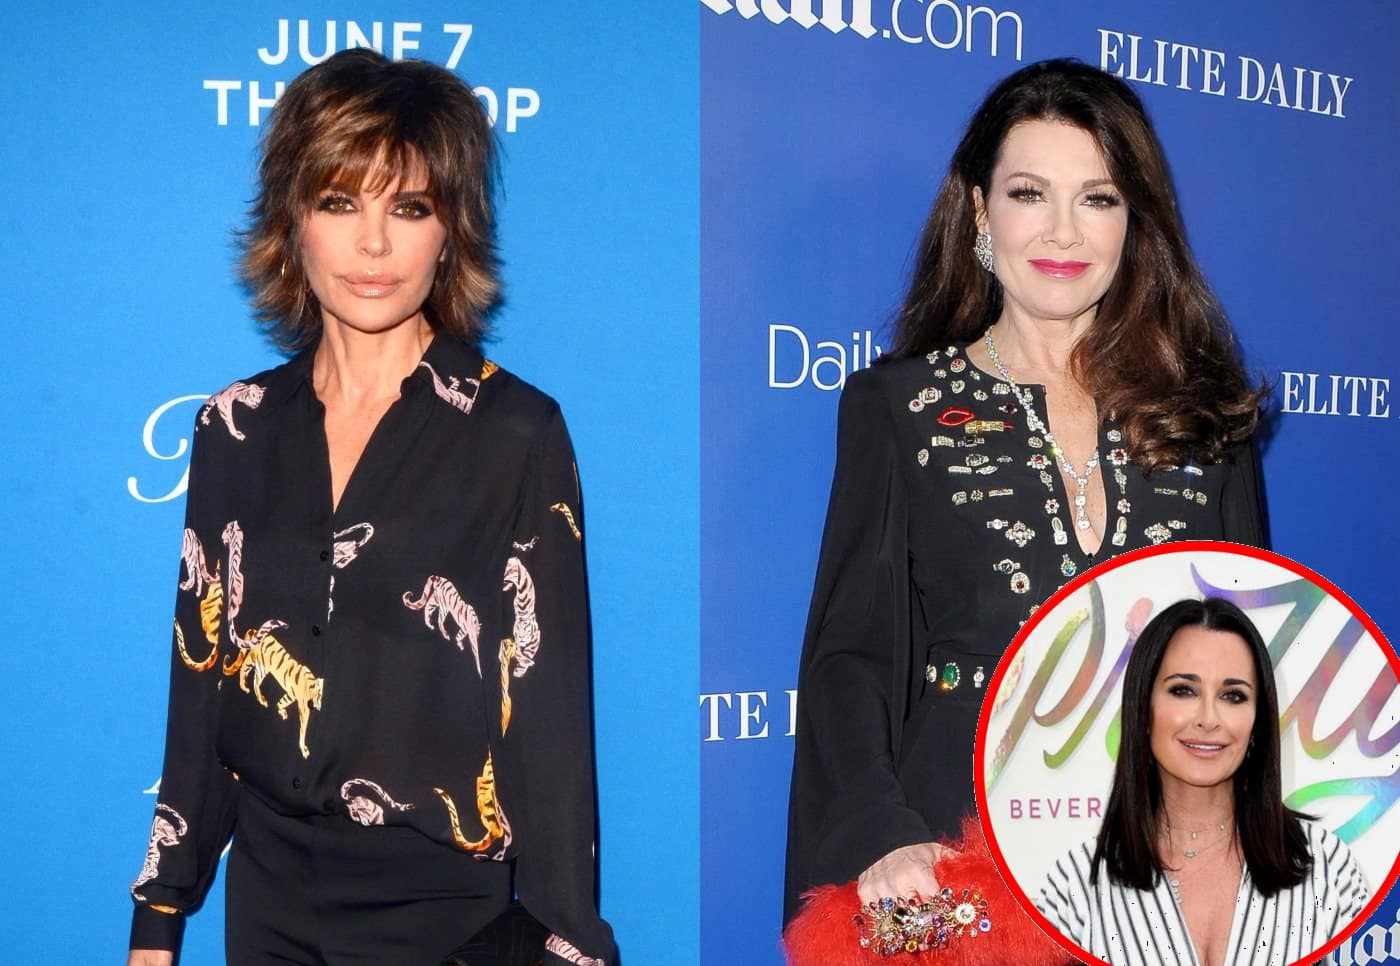 RHOBH's Lisa Rinna Backtracks on Threat to Sue Lisa Vanderpump as Kyle Richards Reveals Why She Kept Bringing Up Puppy Gate